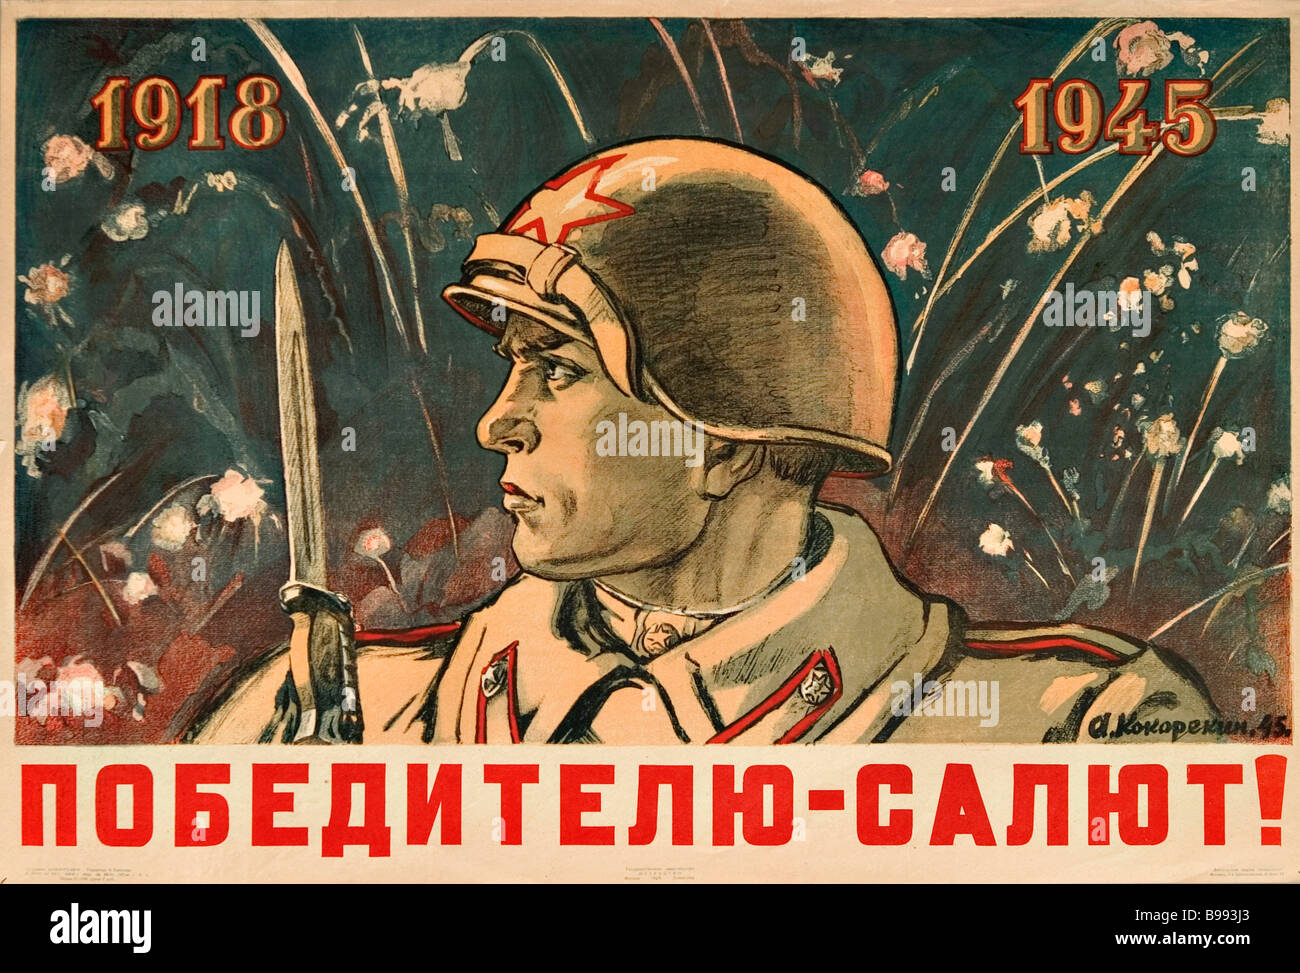 A A Kokorekin s poster Salute to the victor 1945 - Stock Image